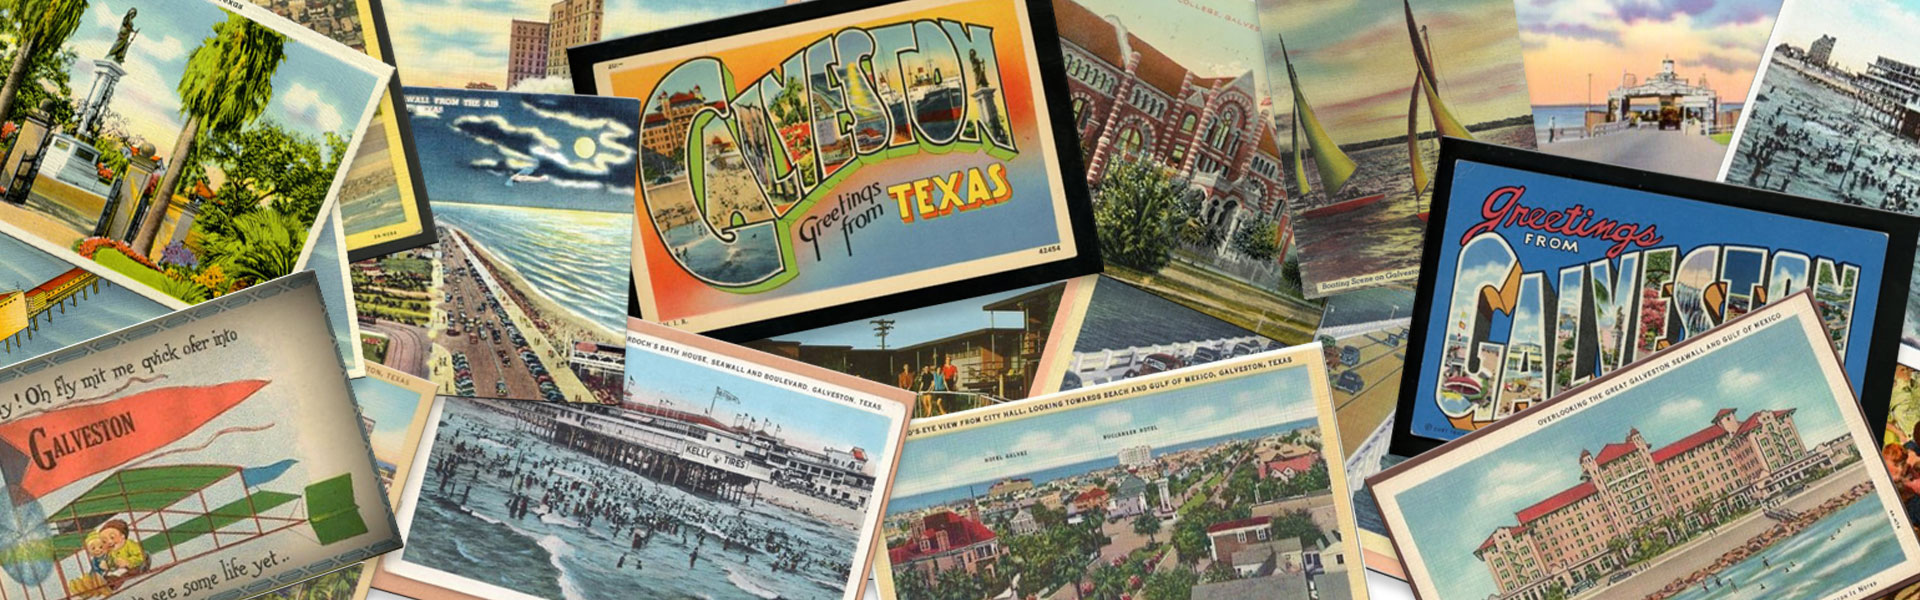 Collage of Vintage Galveston Island Postcards, Galveston, TX